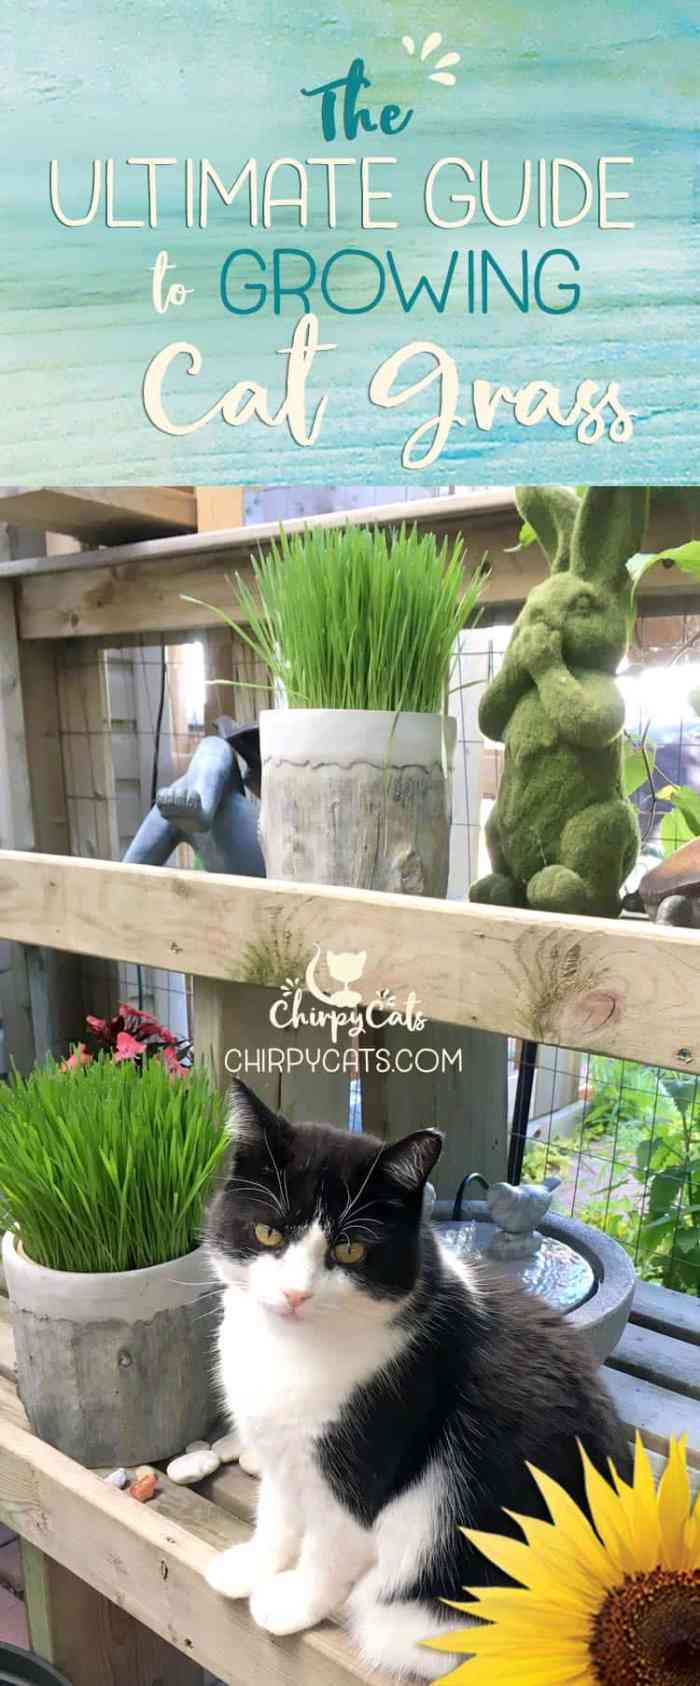 The ultimate guide to growing cat grass